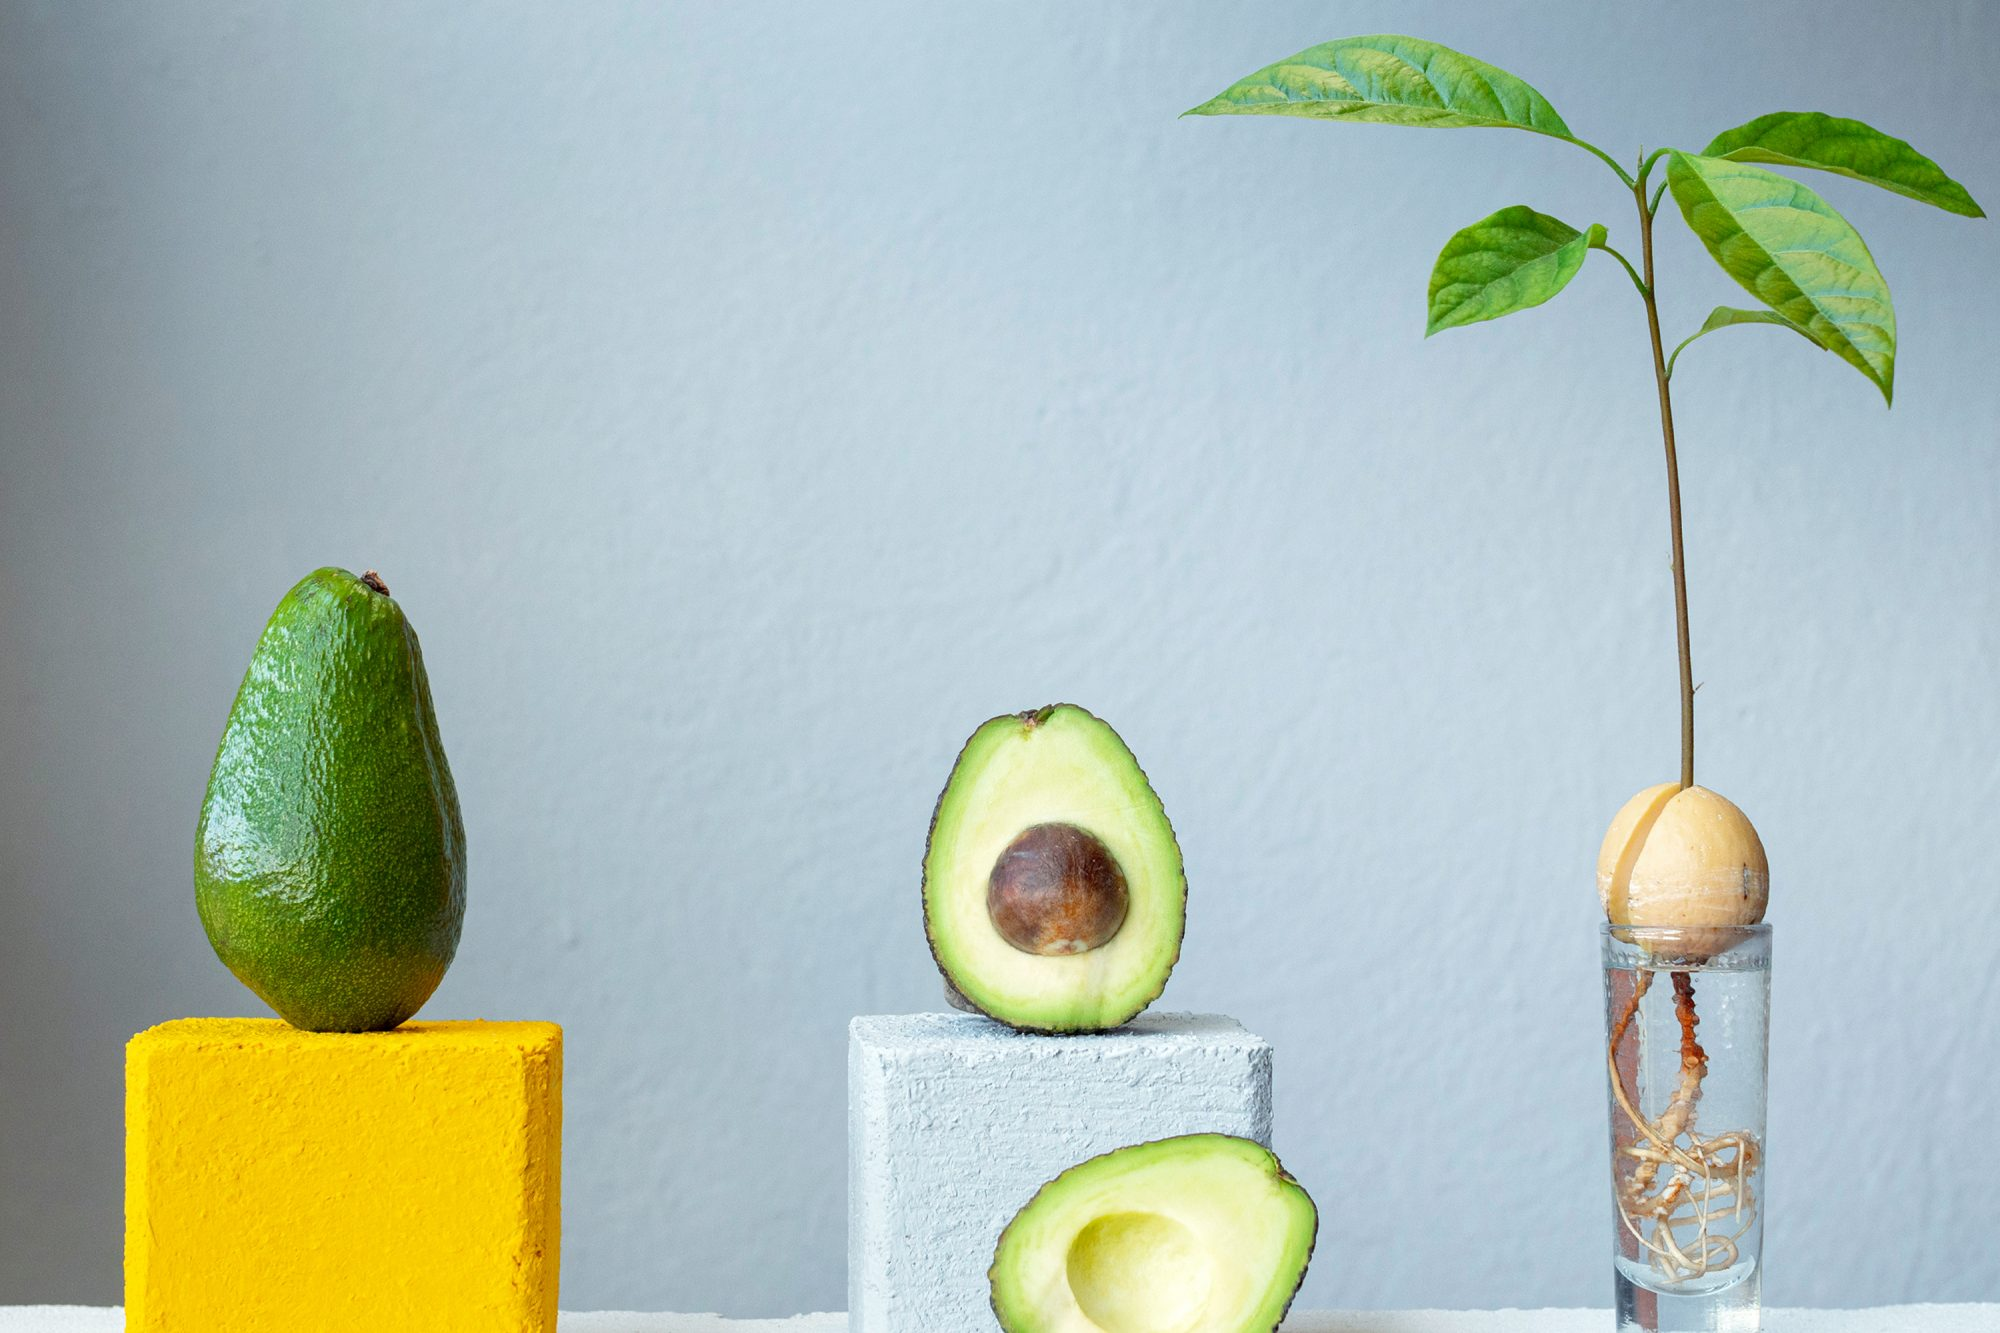 avocados and avocado plant in water